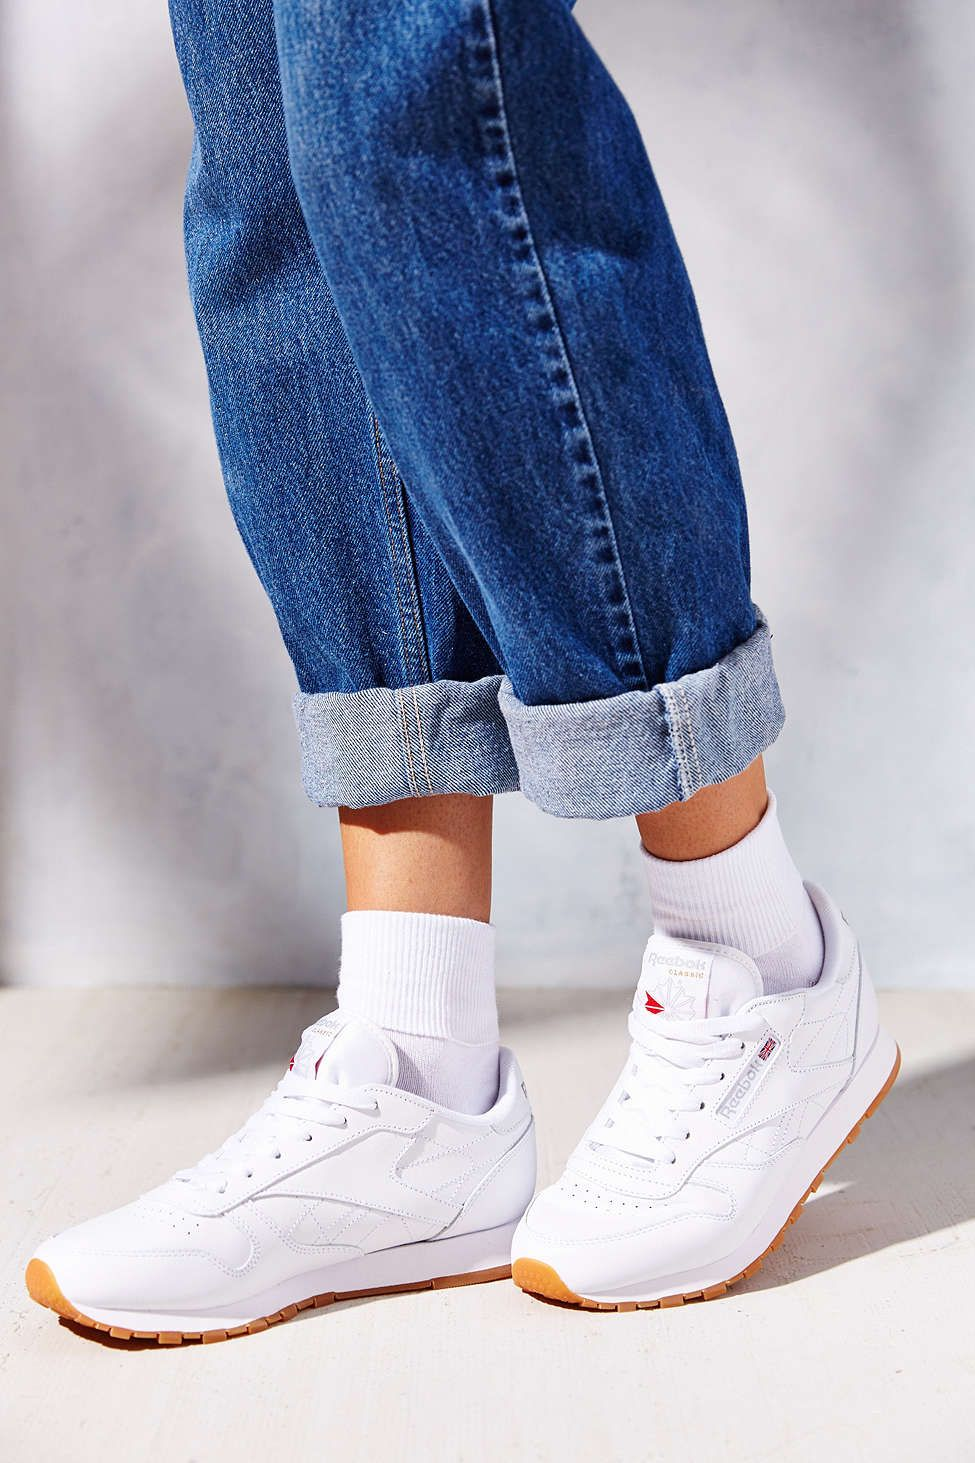 f345d2e9efbdf5 Classic gum-sole sneaker in white by Reebok size 6. Urban Outfitters ...